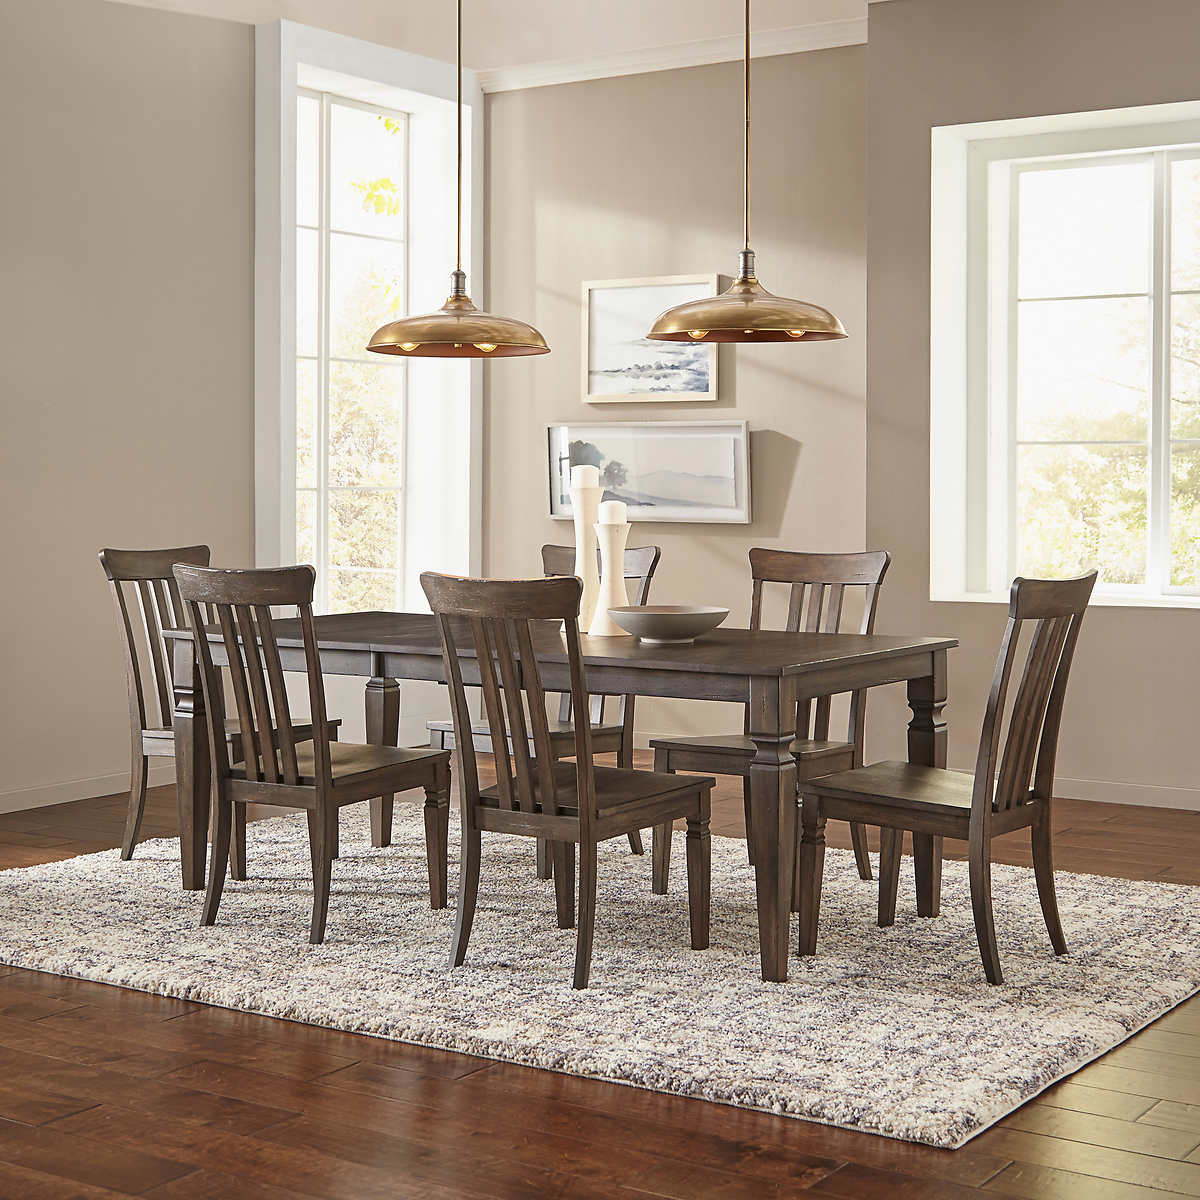 Oxford 7 Piece Solid Wood Dining Room, 7 Piece Dining Room Set Under $500